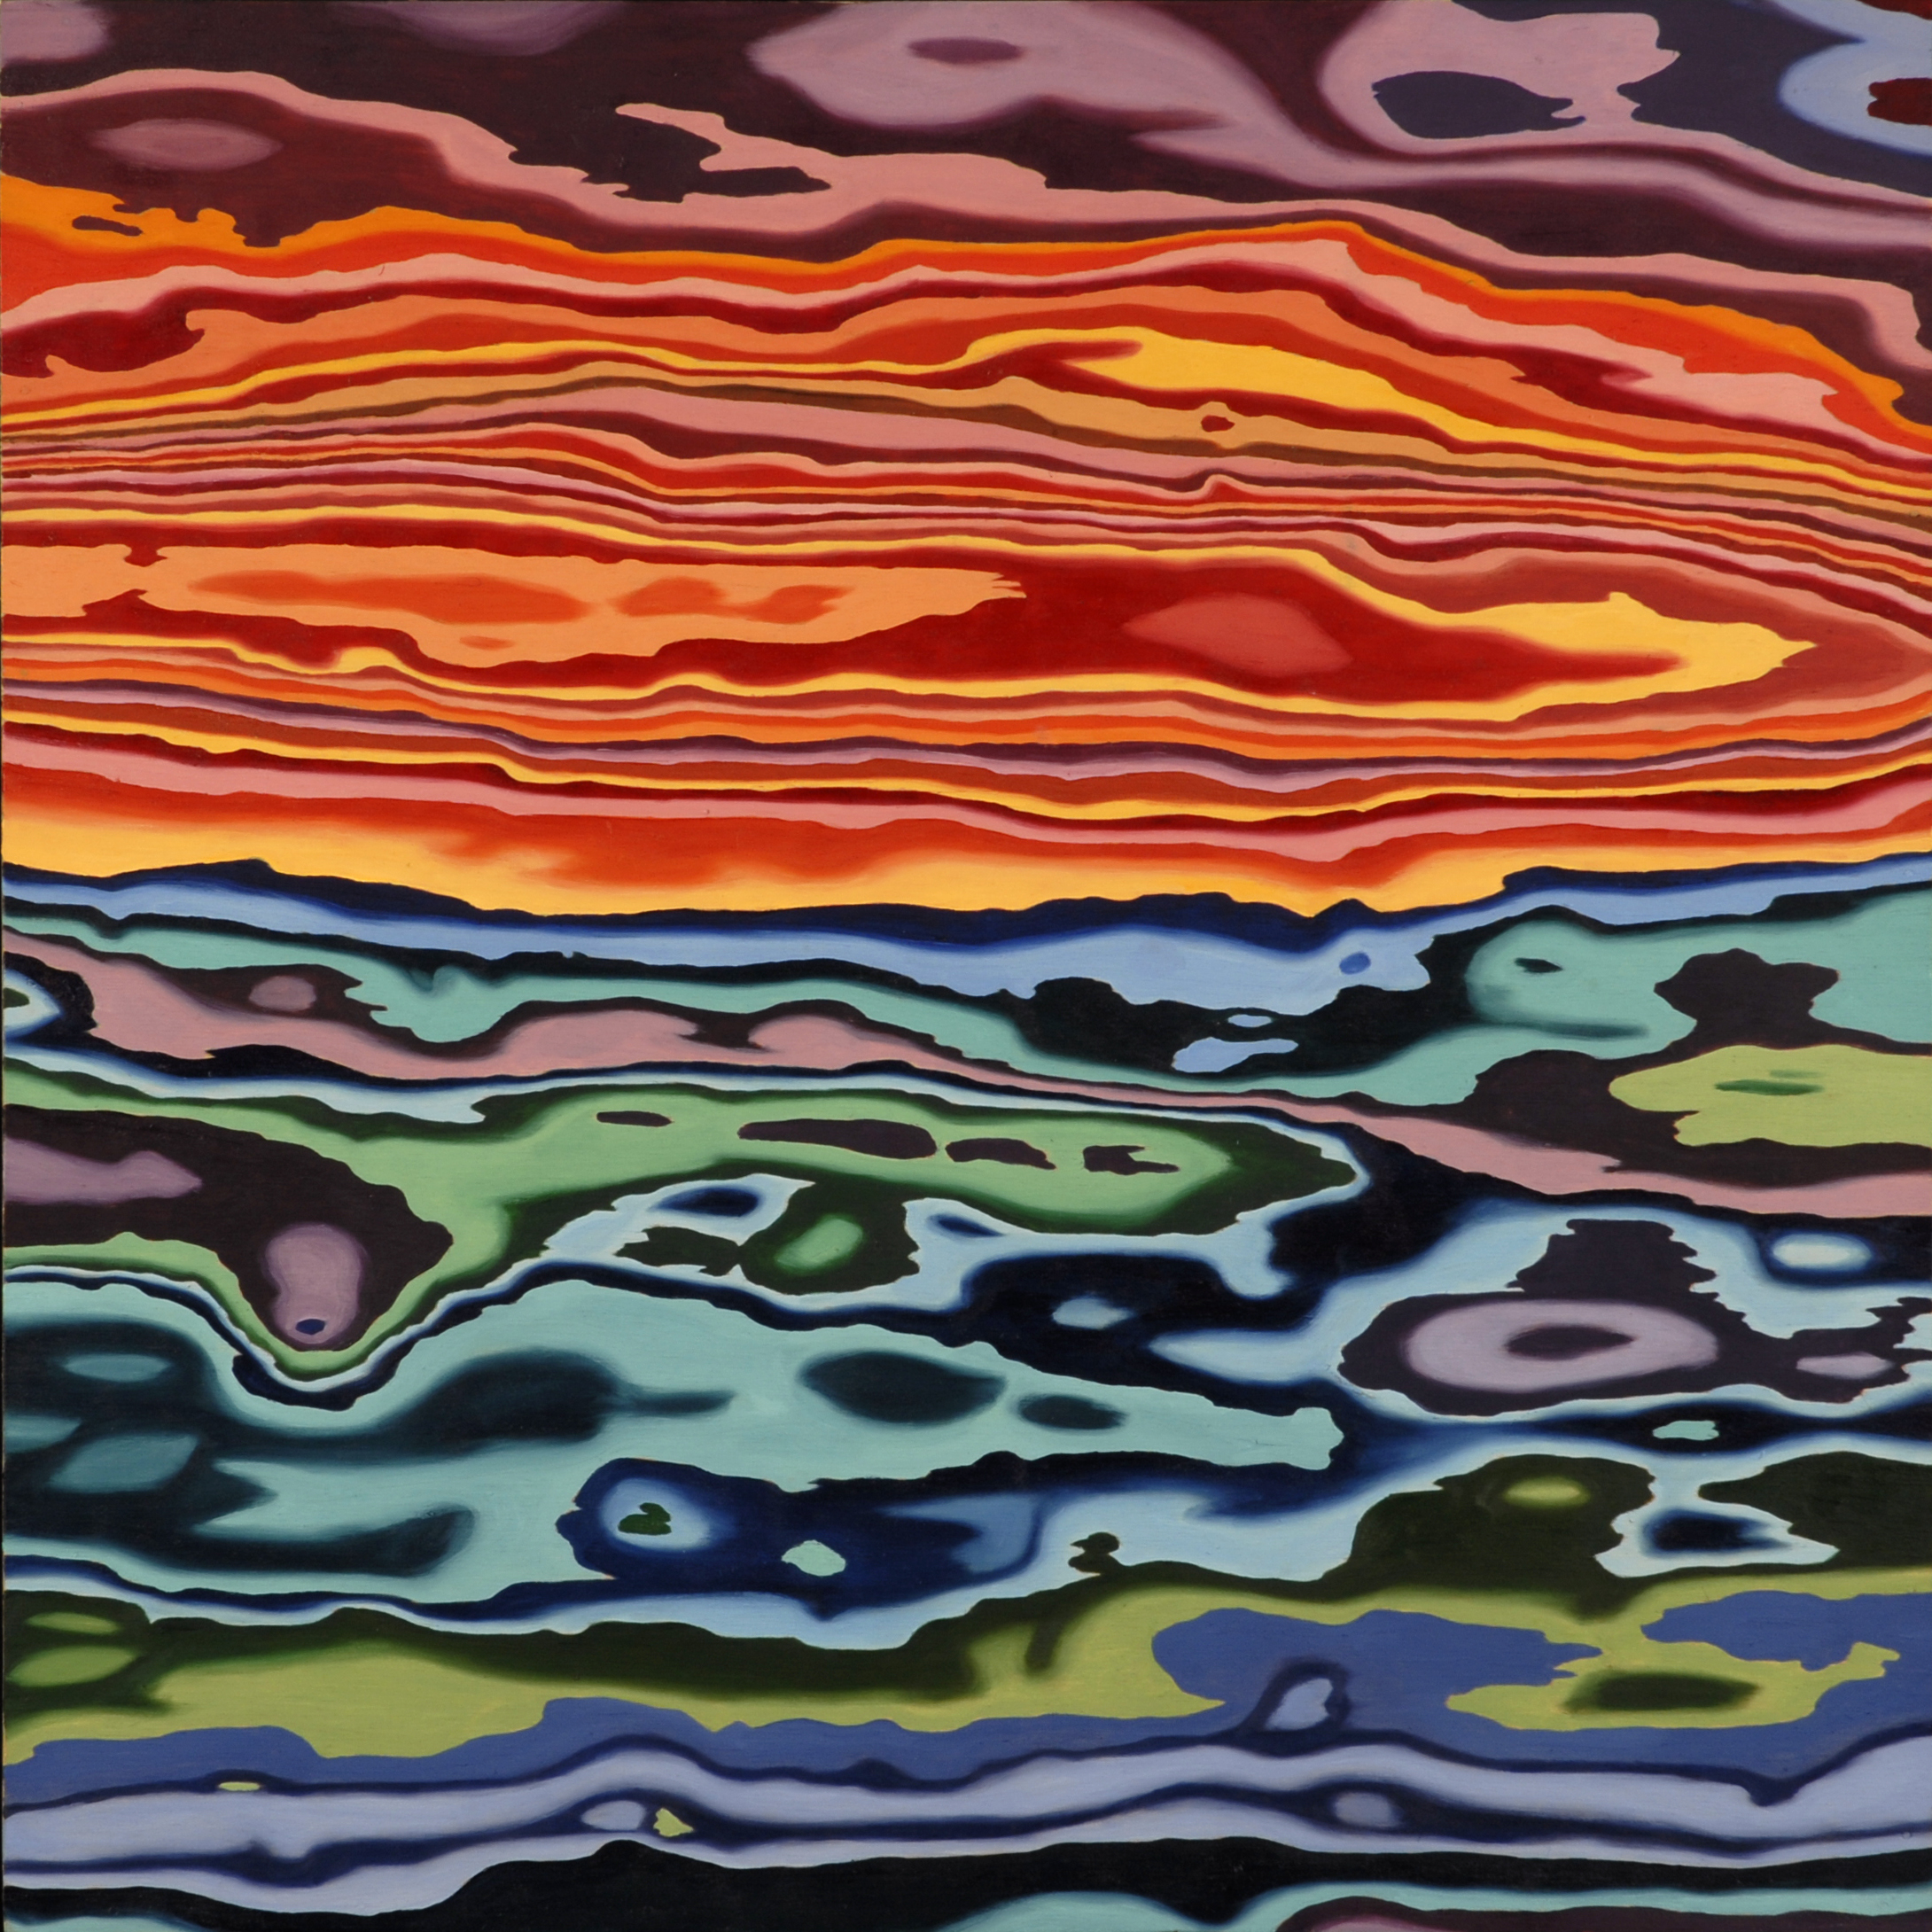 Sailor's Delight, 2005